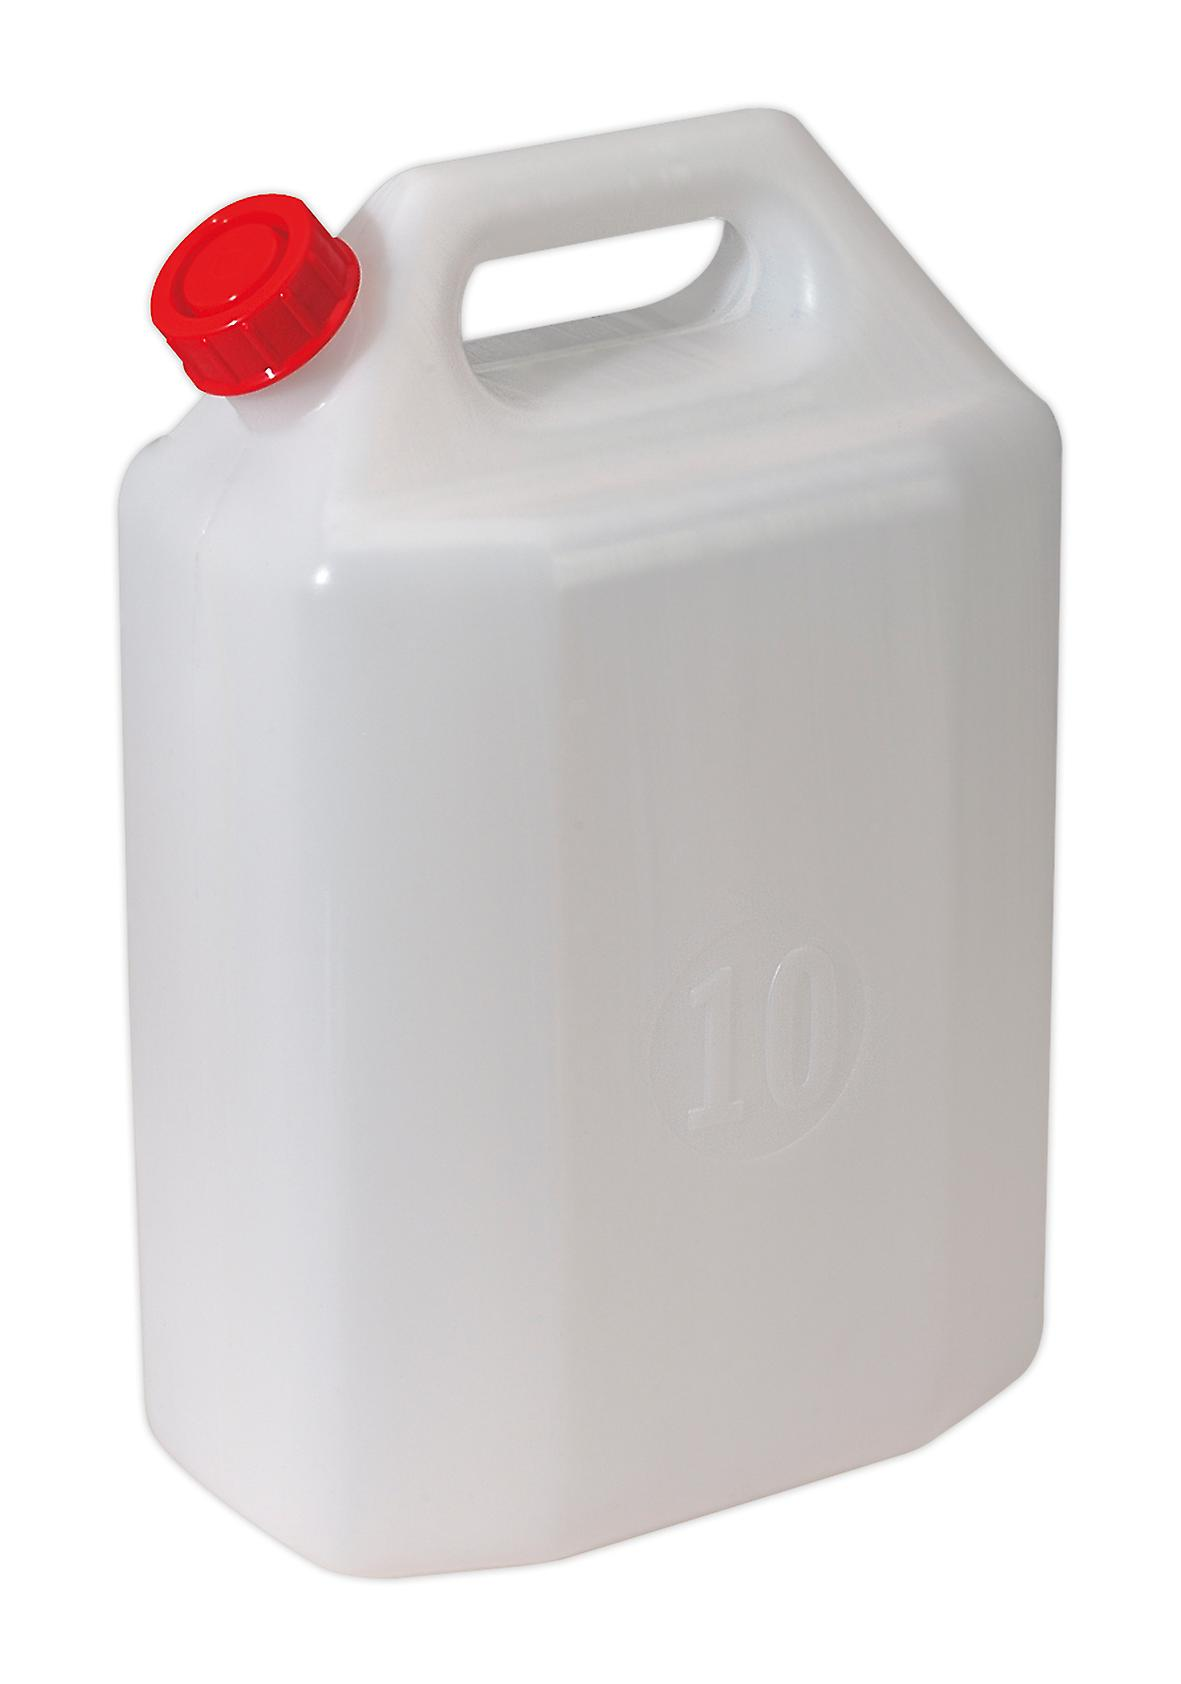 Sealey Wc10 Water Container 10Ltr